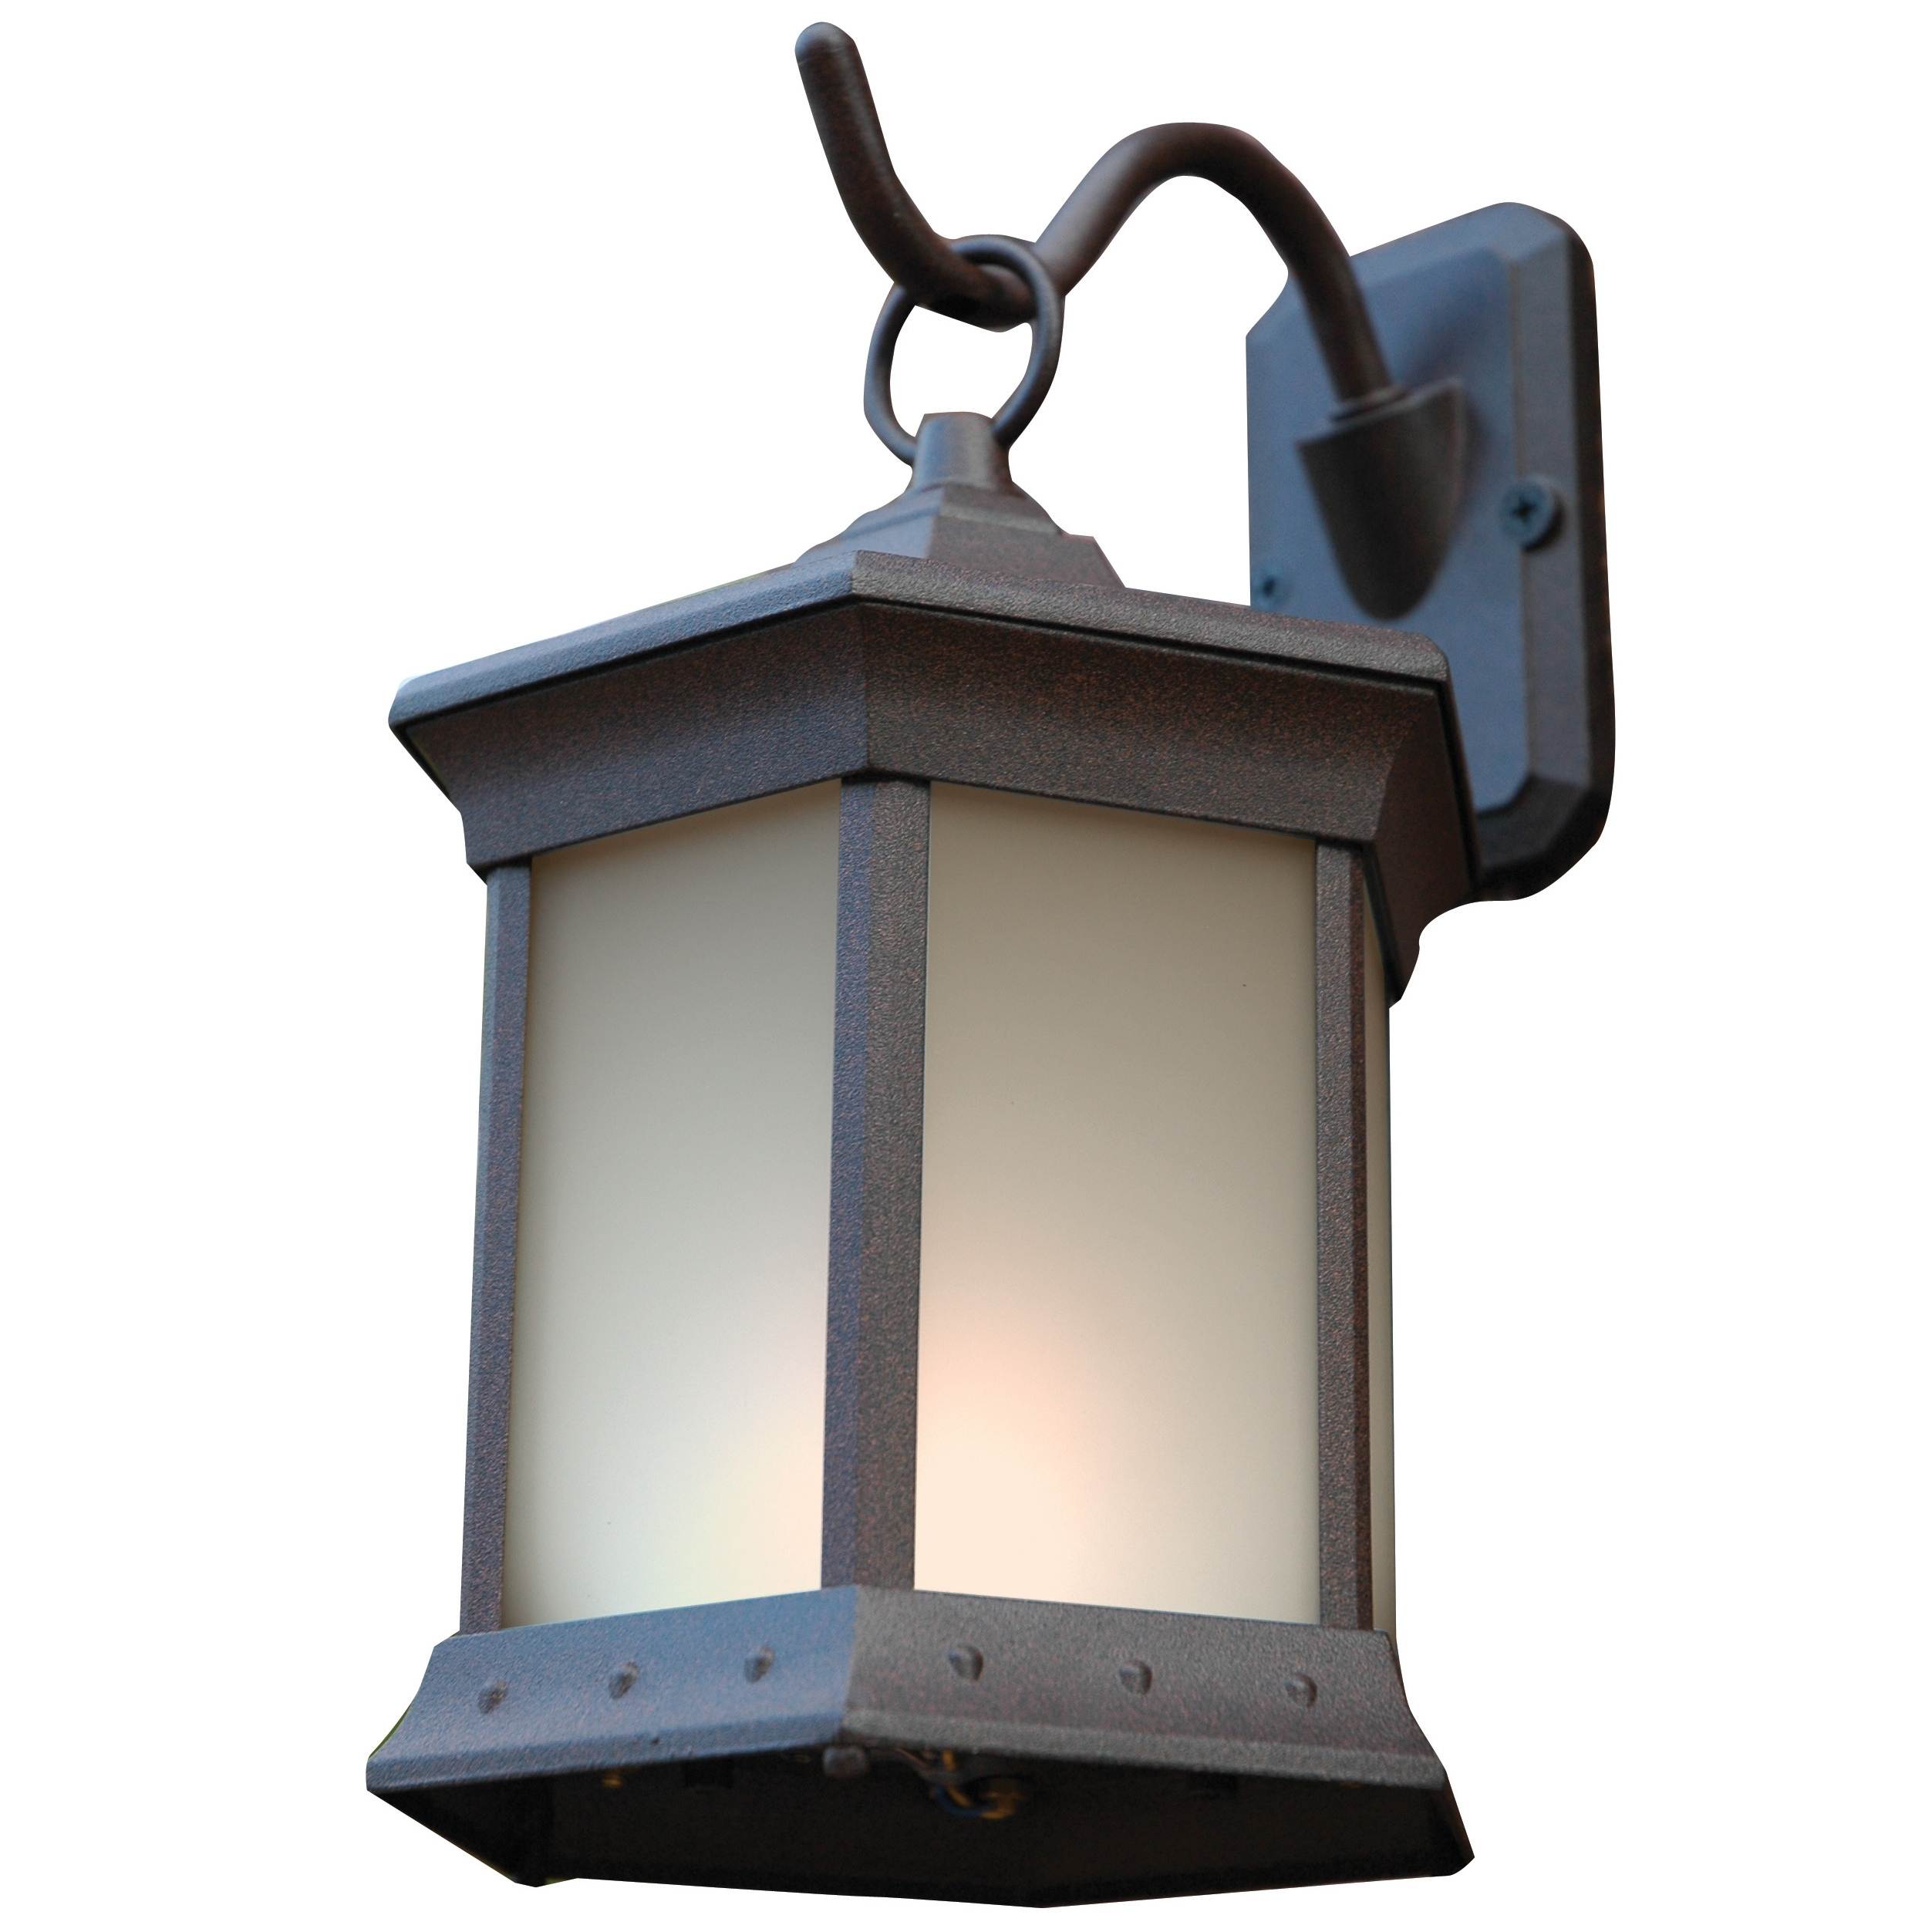 Best And Newest Rustic Outdoor Wall Lighting Wayfair 1 Light Lantern Set Of 2 ~ Loversiq With Rustic Outdoor Lighting At Wayfair (View 2 of 20)